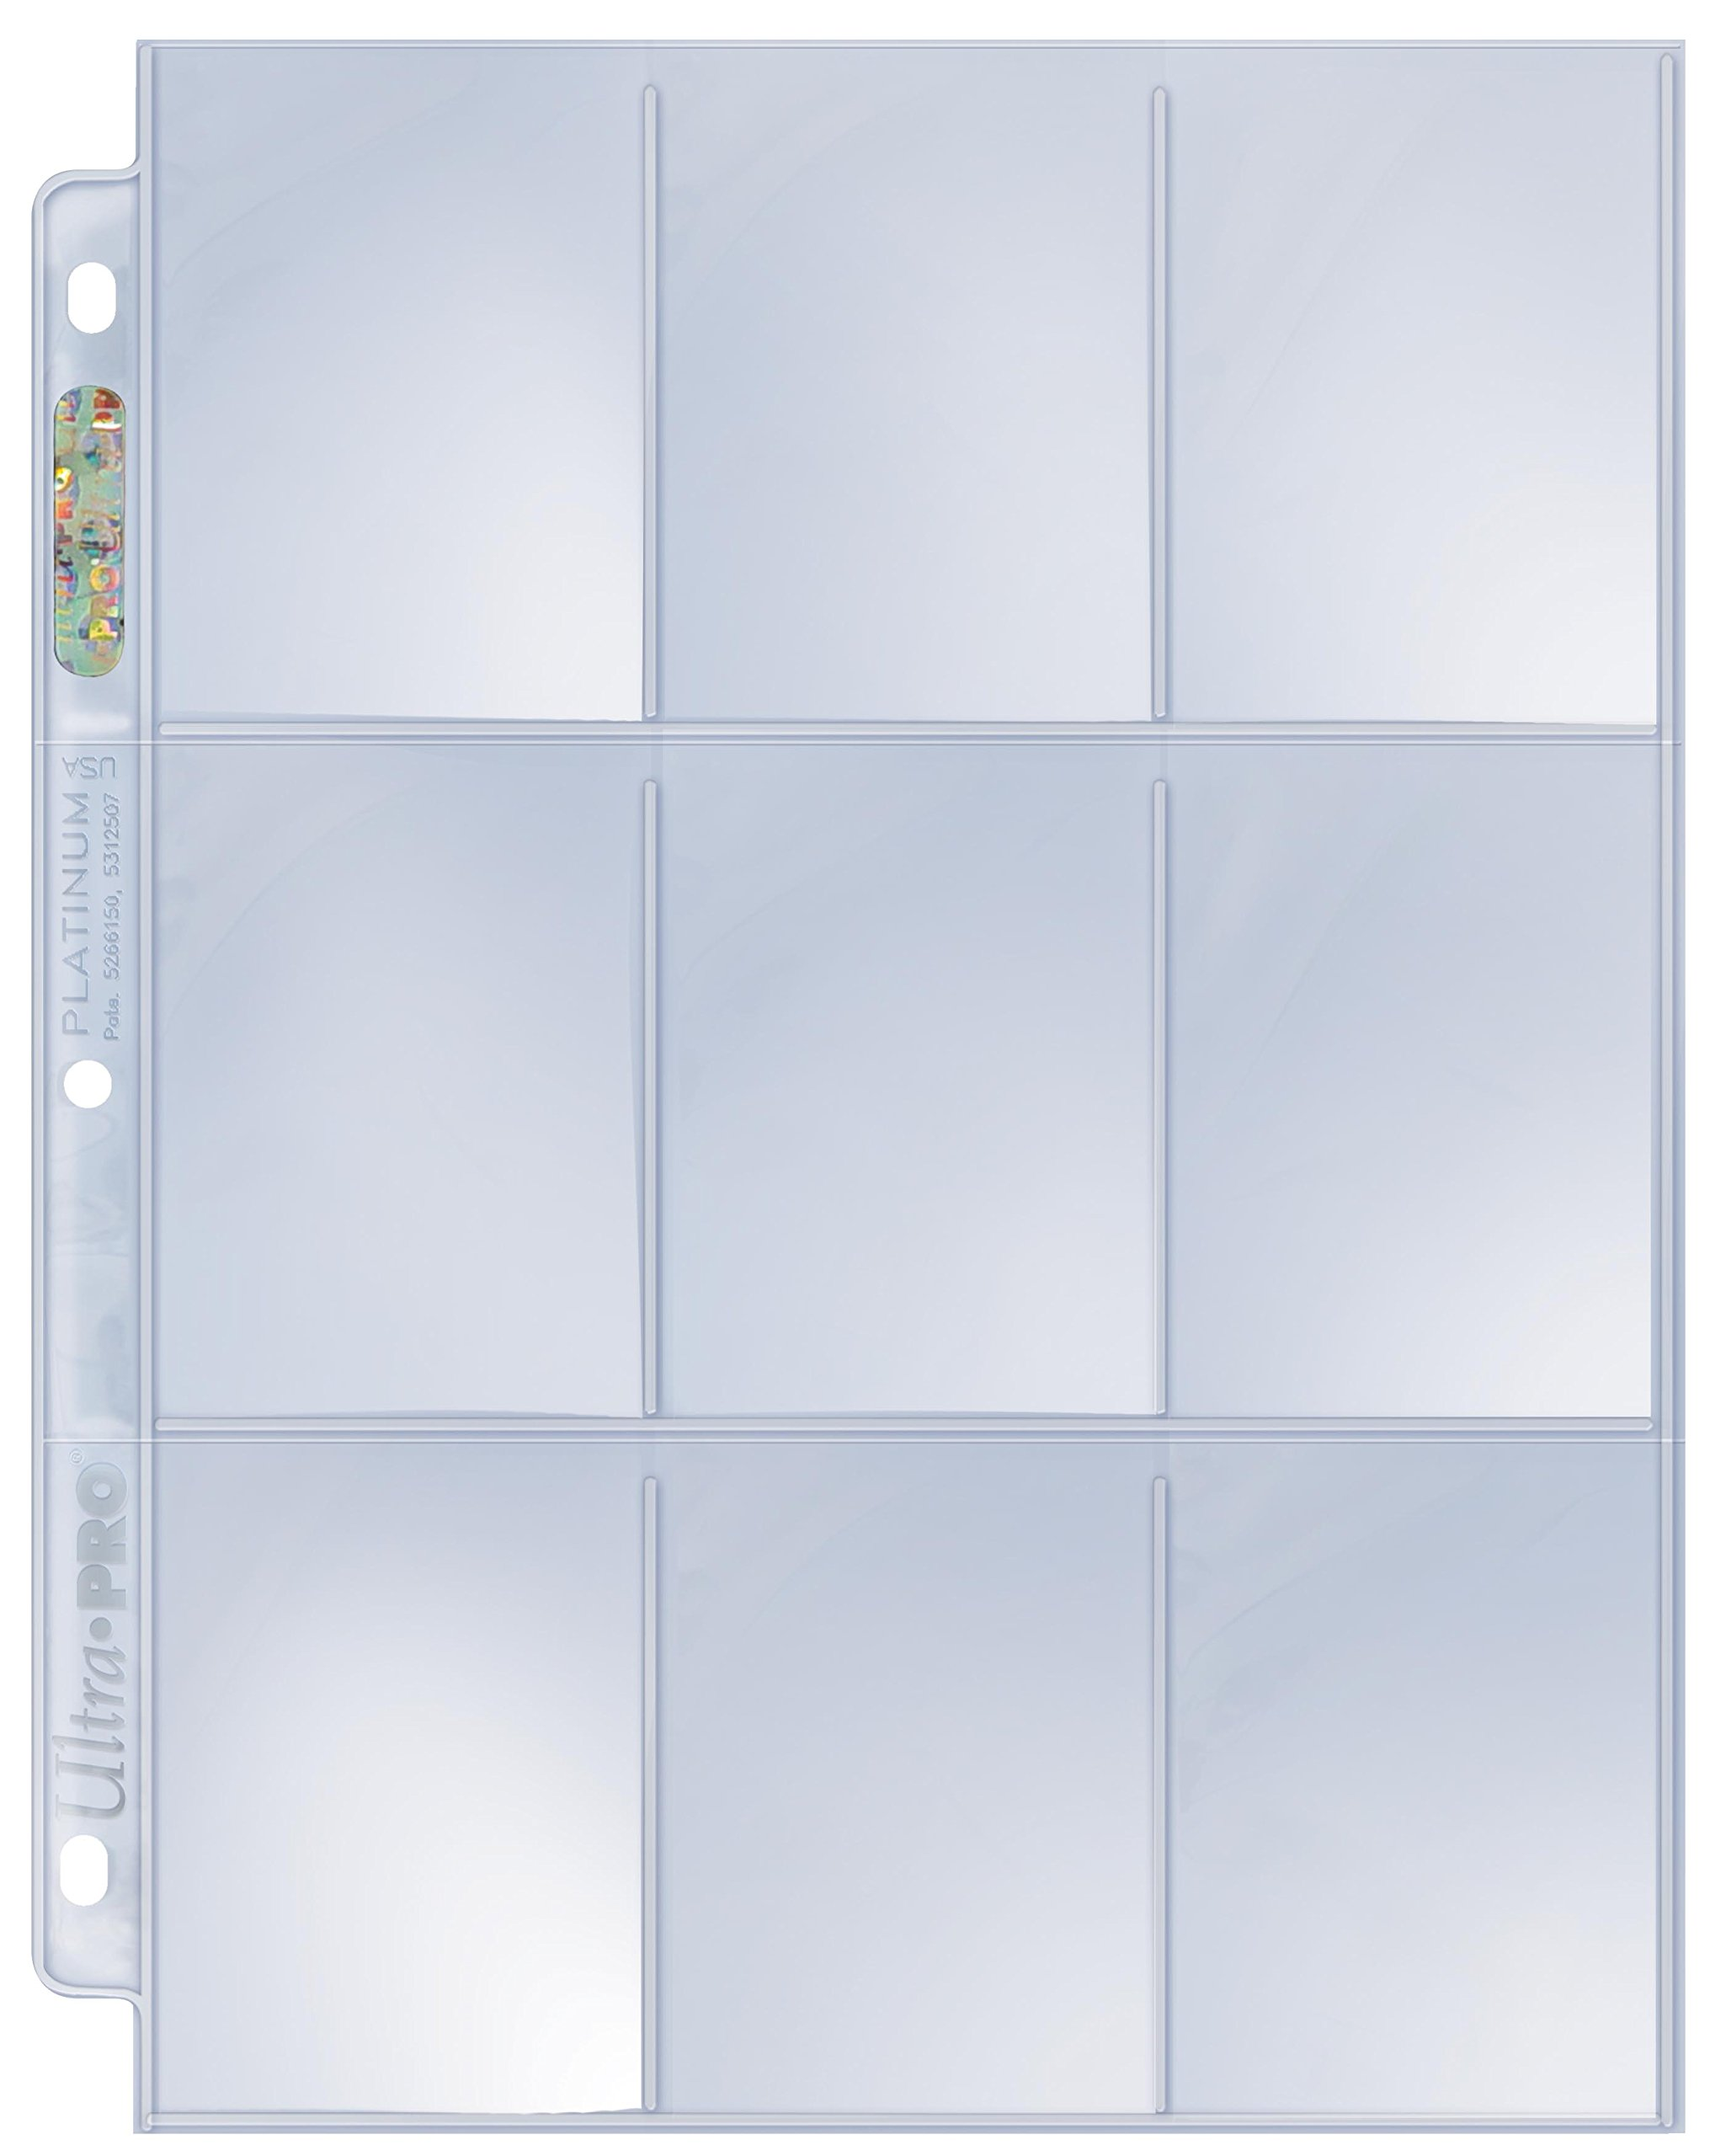 9-Pocket Trading Platinum Series Card Pages (1000 Pages)